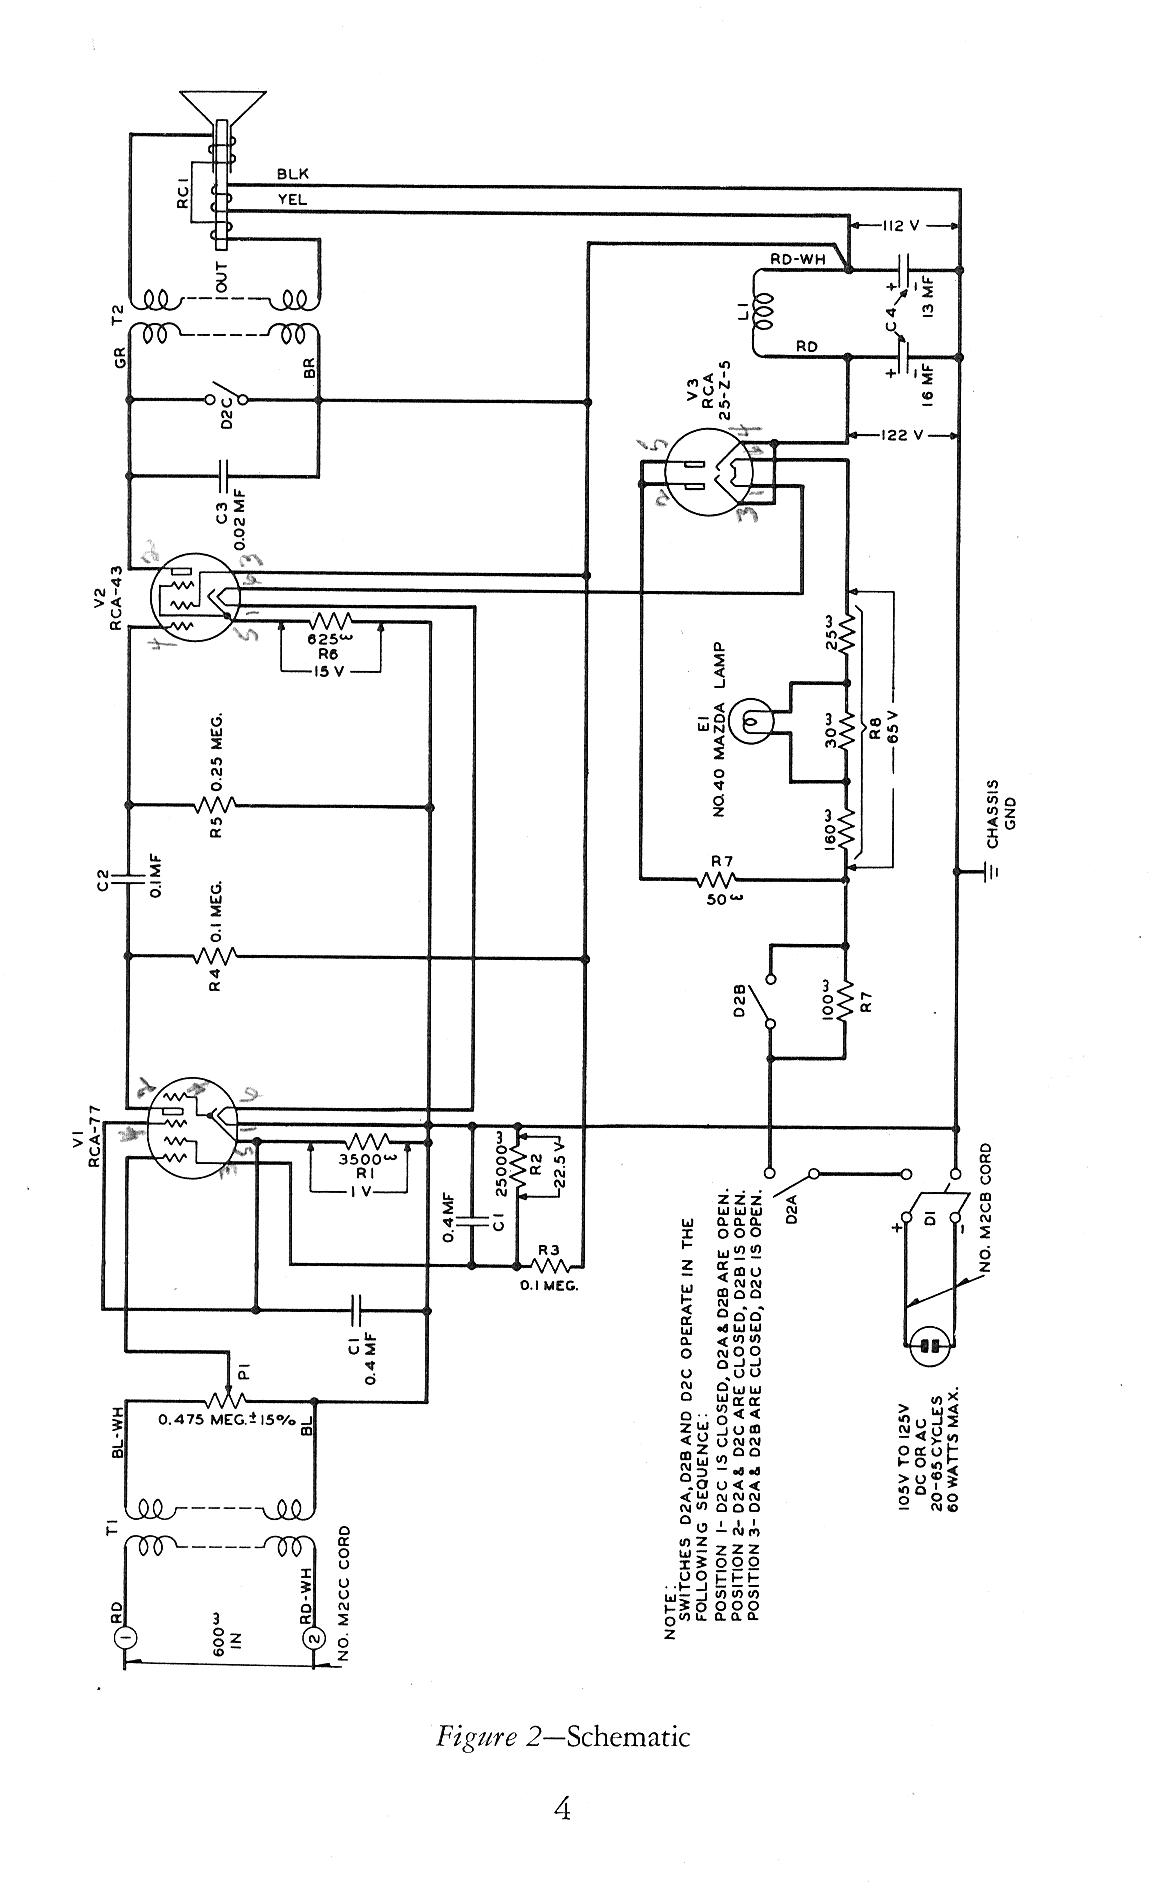 Telephone Technical References Systems Wiring Diagram Additionally Fm Radio Receiver Circuit 100 Type